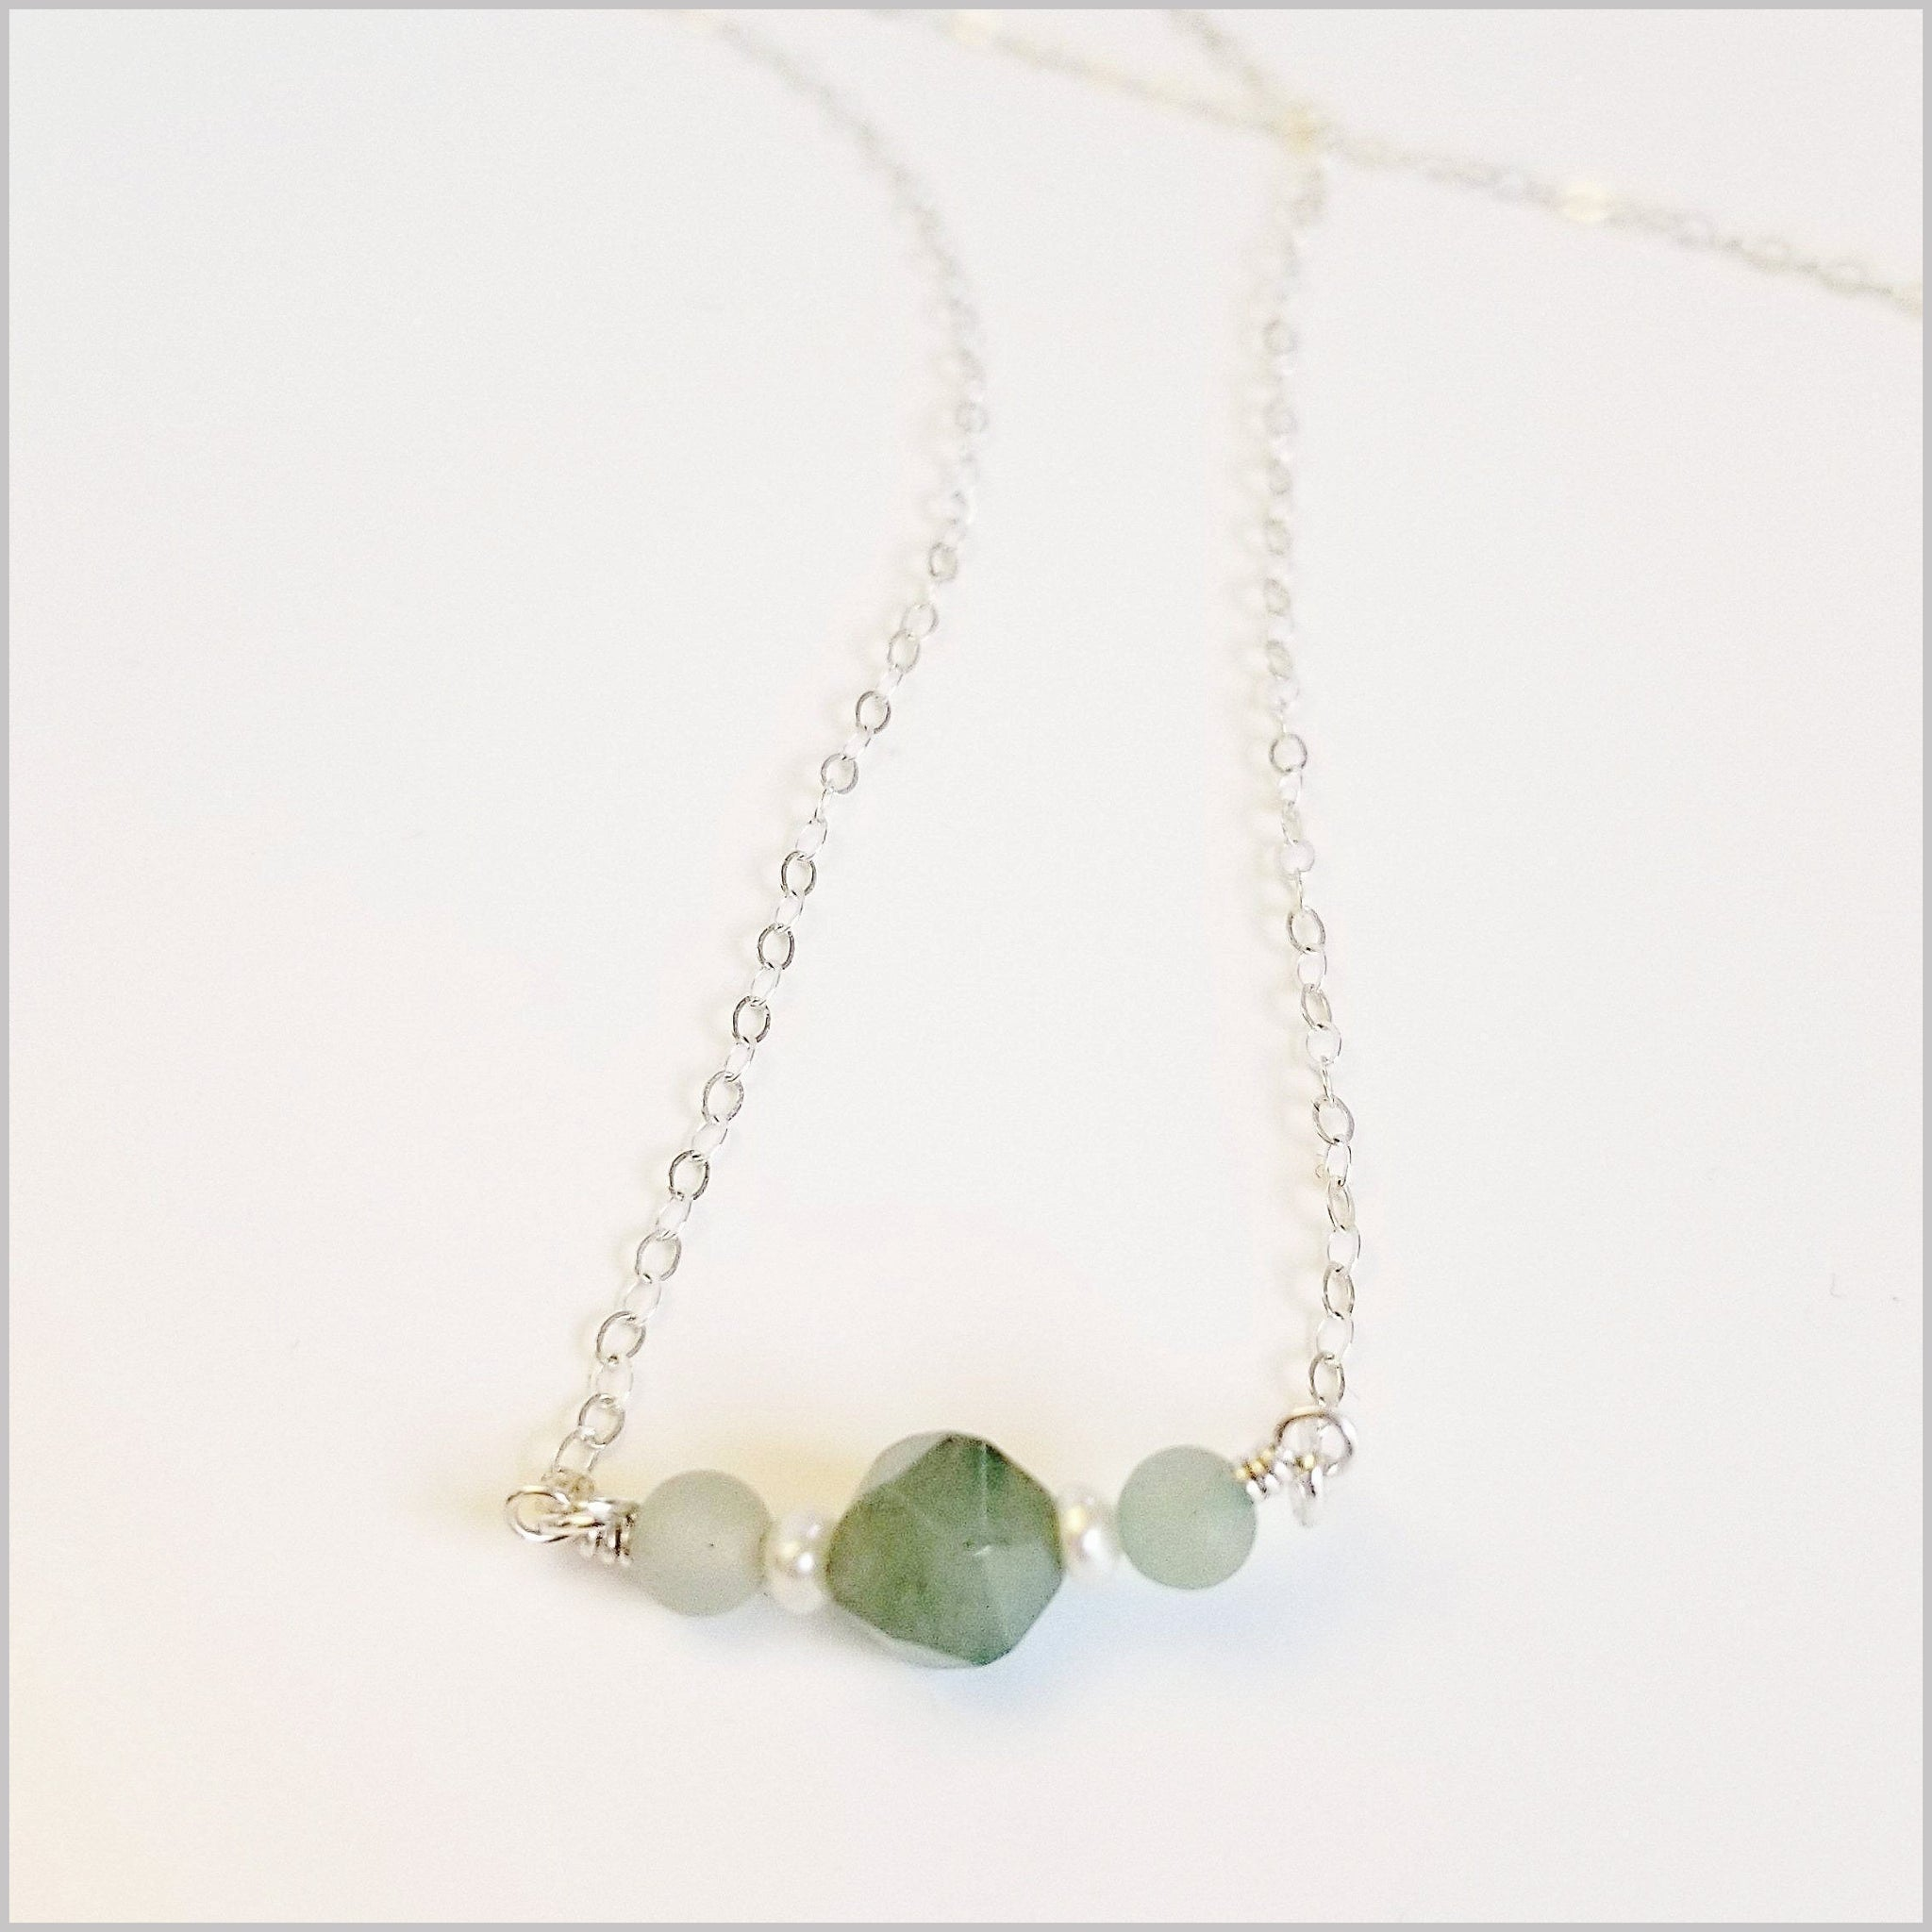 Natural Aventurine and Pearl Necklace